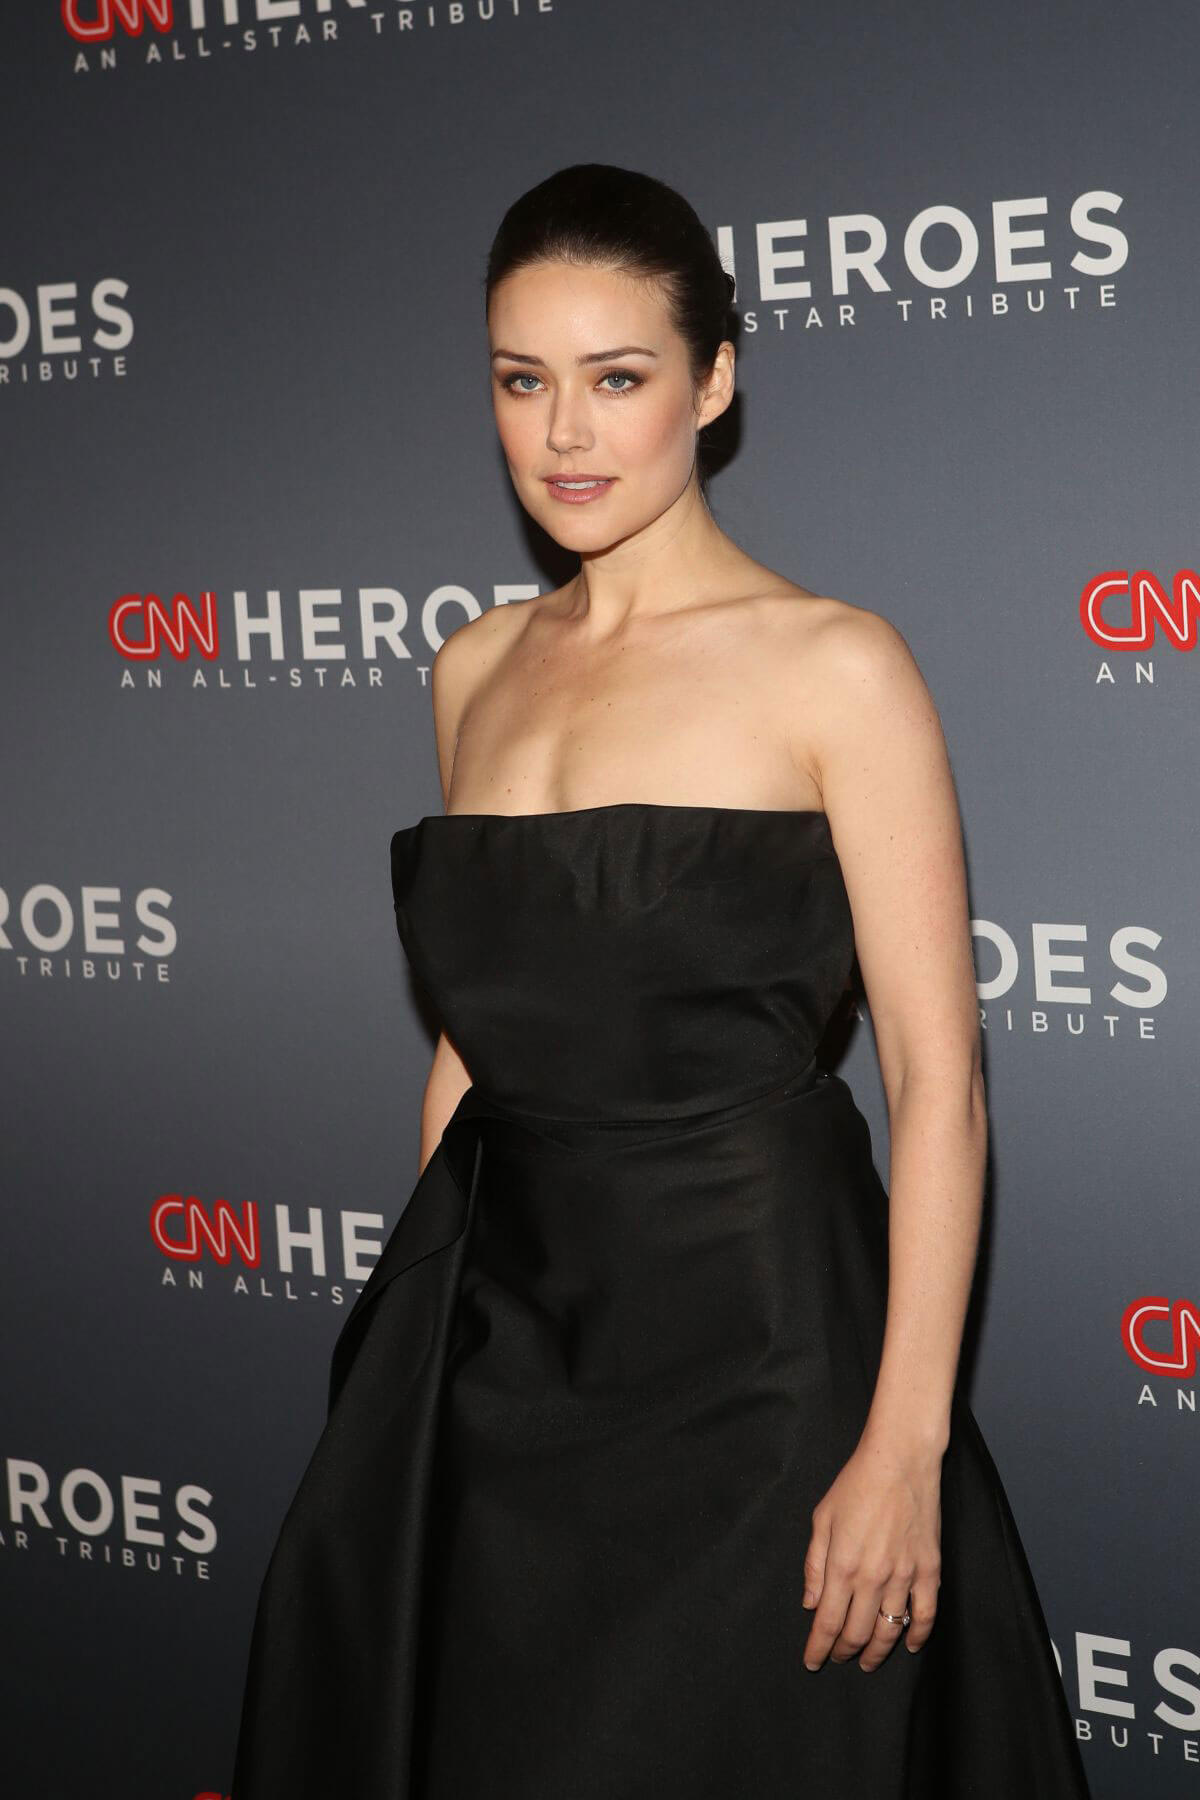 19 megan boone actress - photo #32